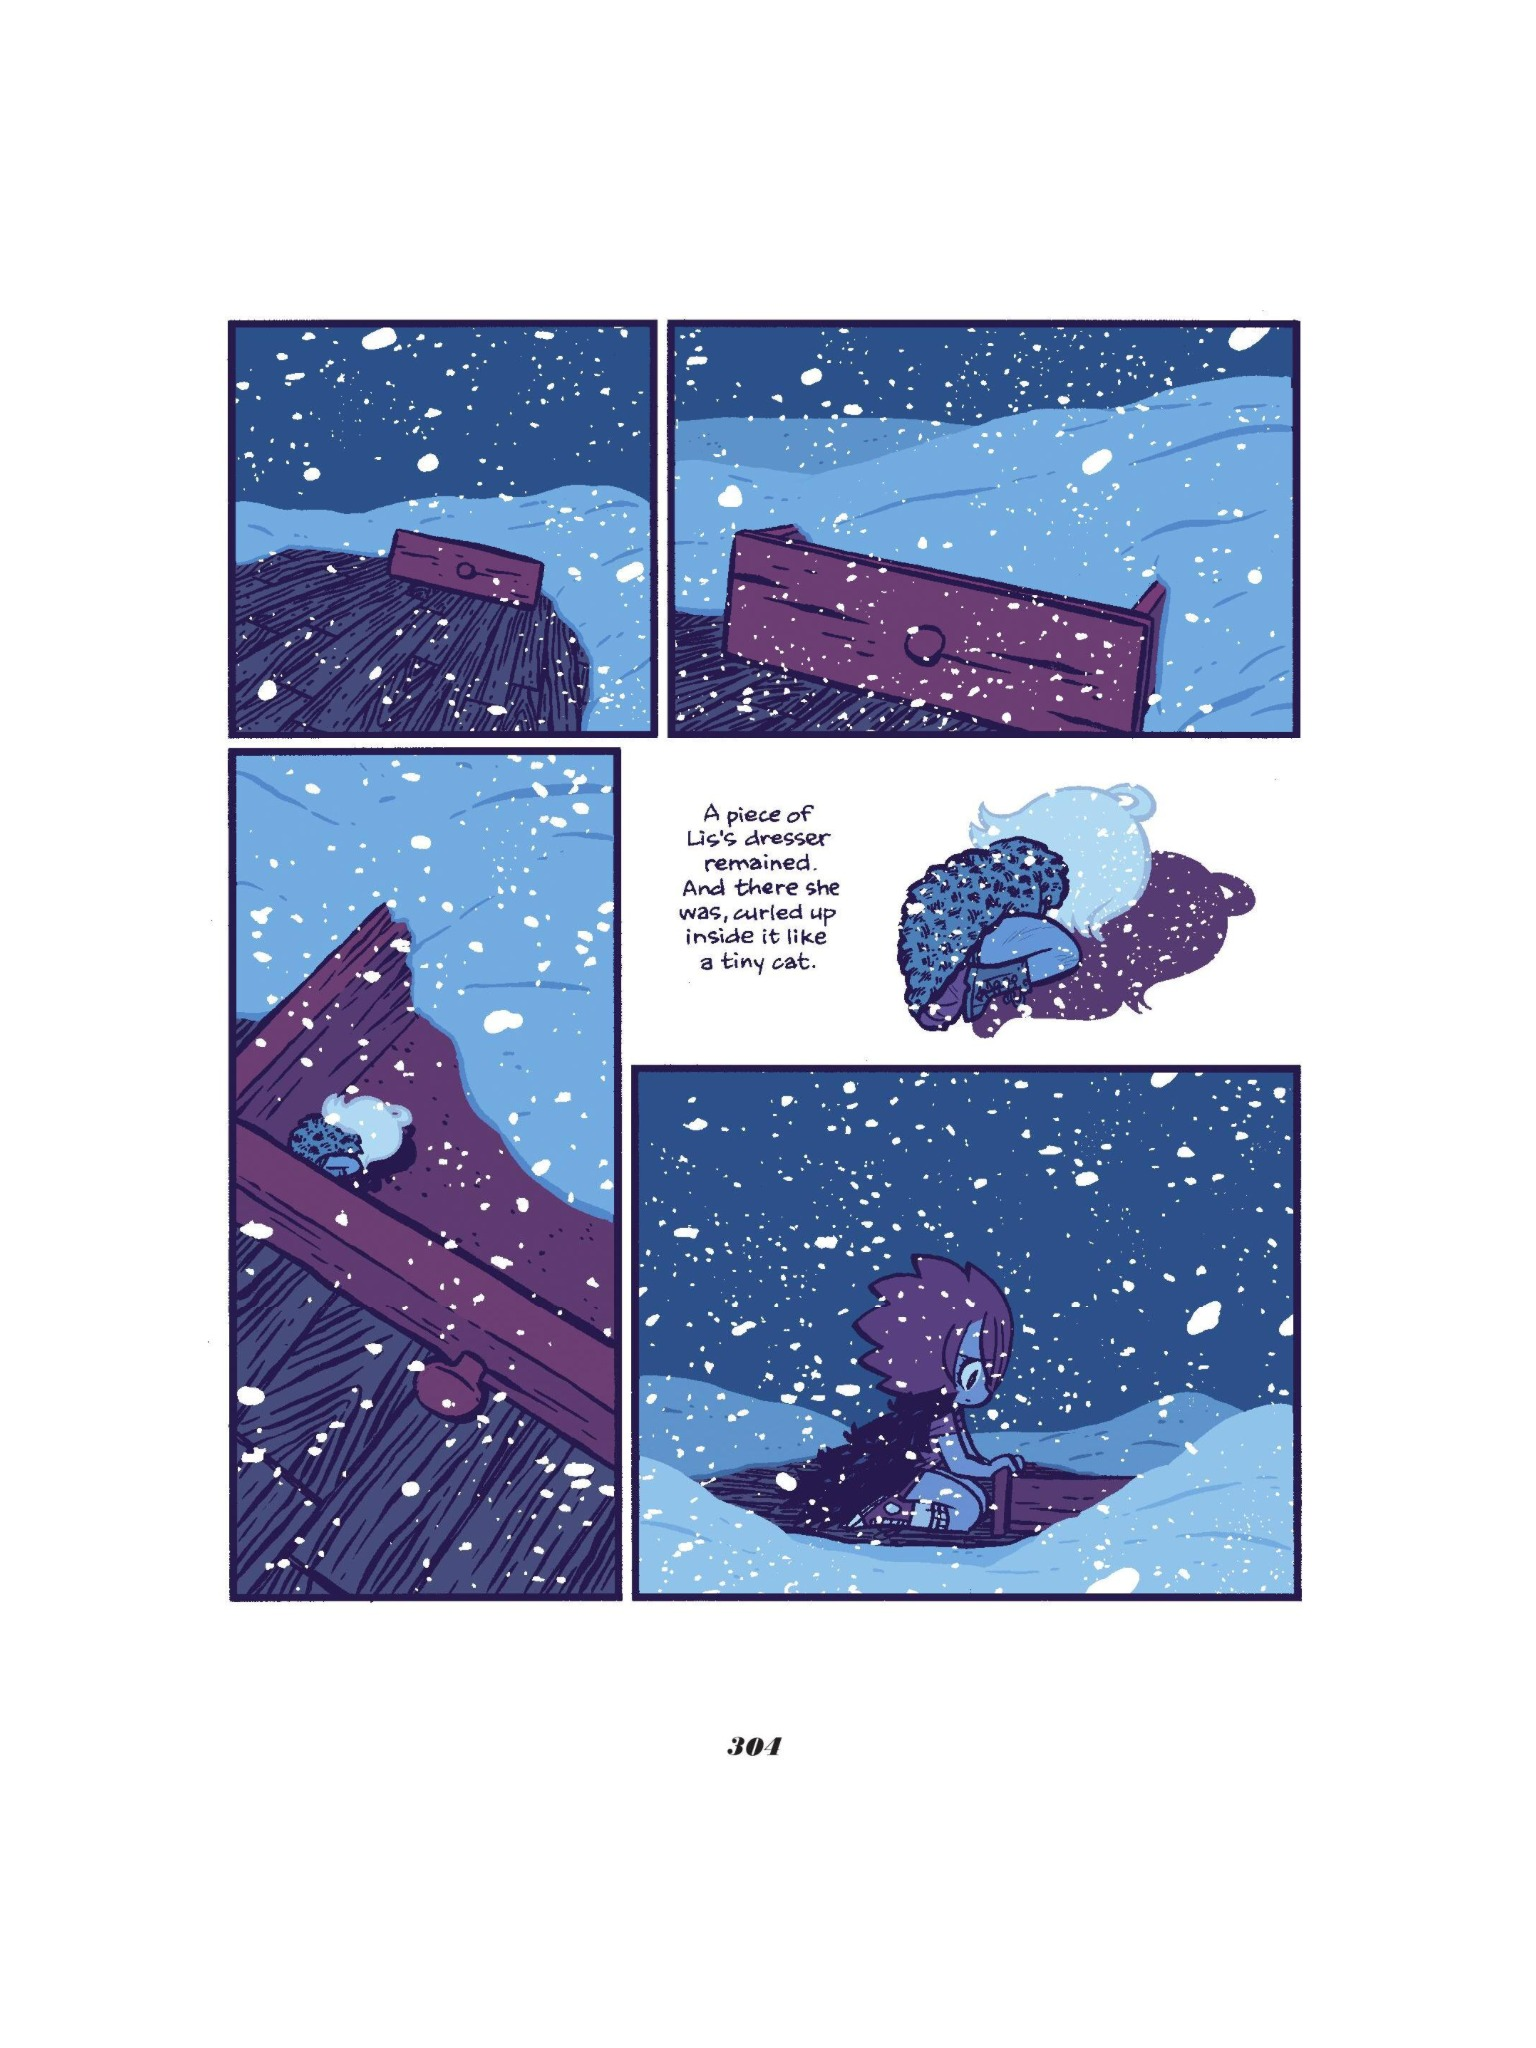 Read online Seconds comic -  Issue # Full - 304